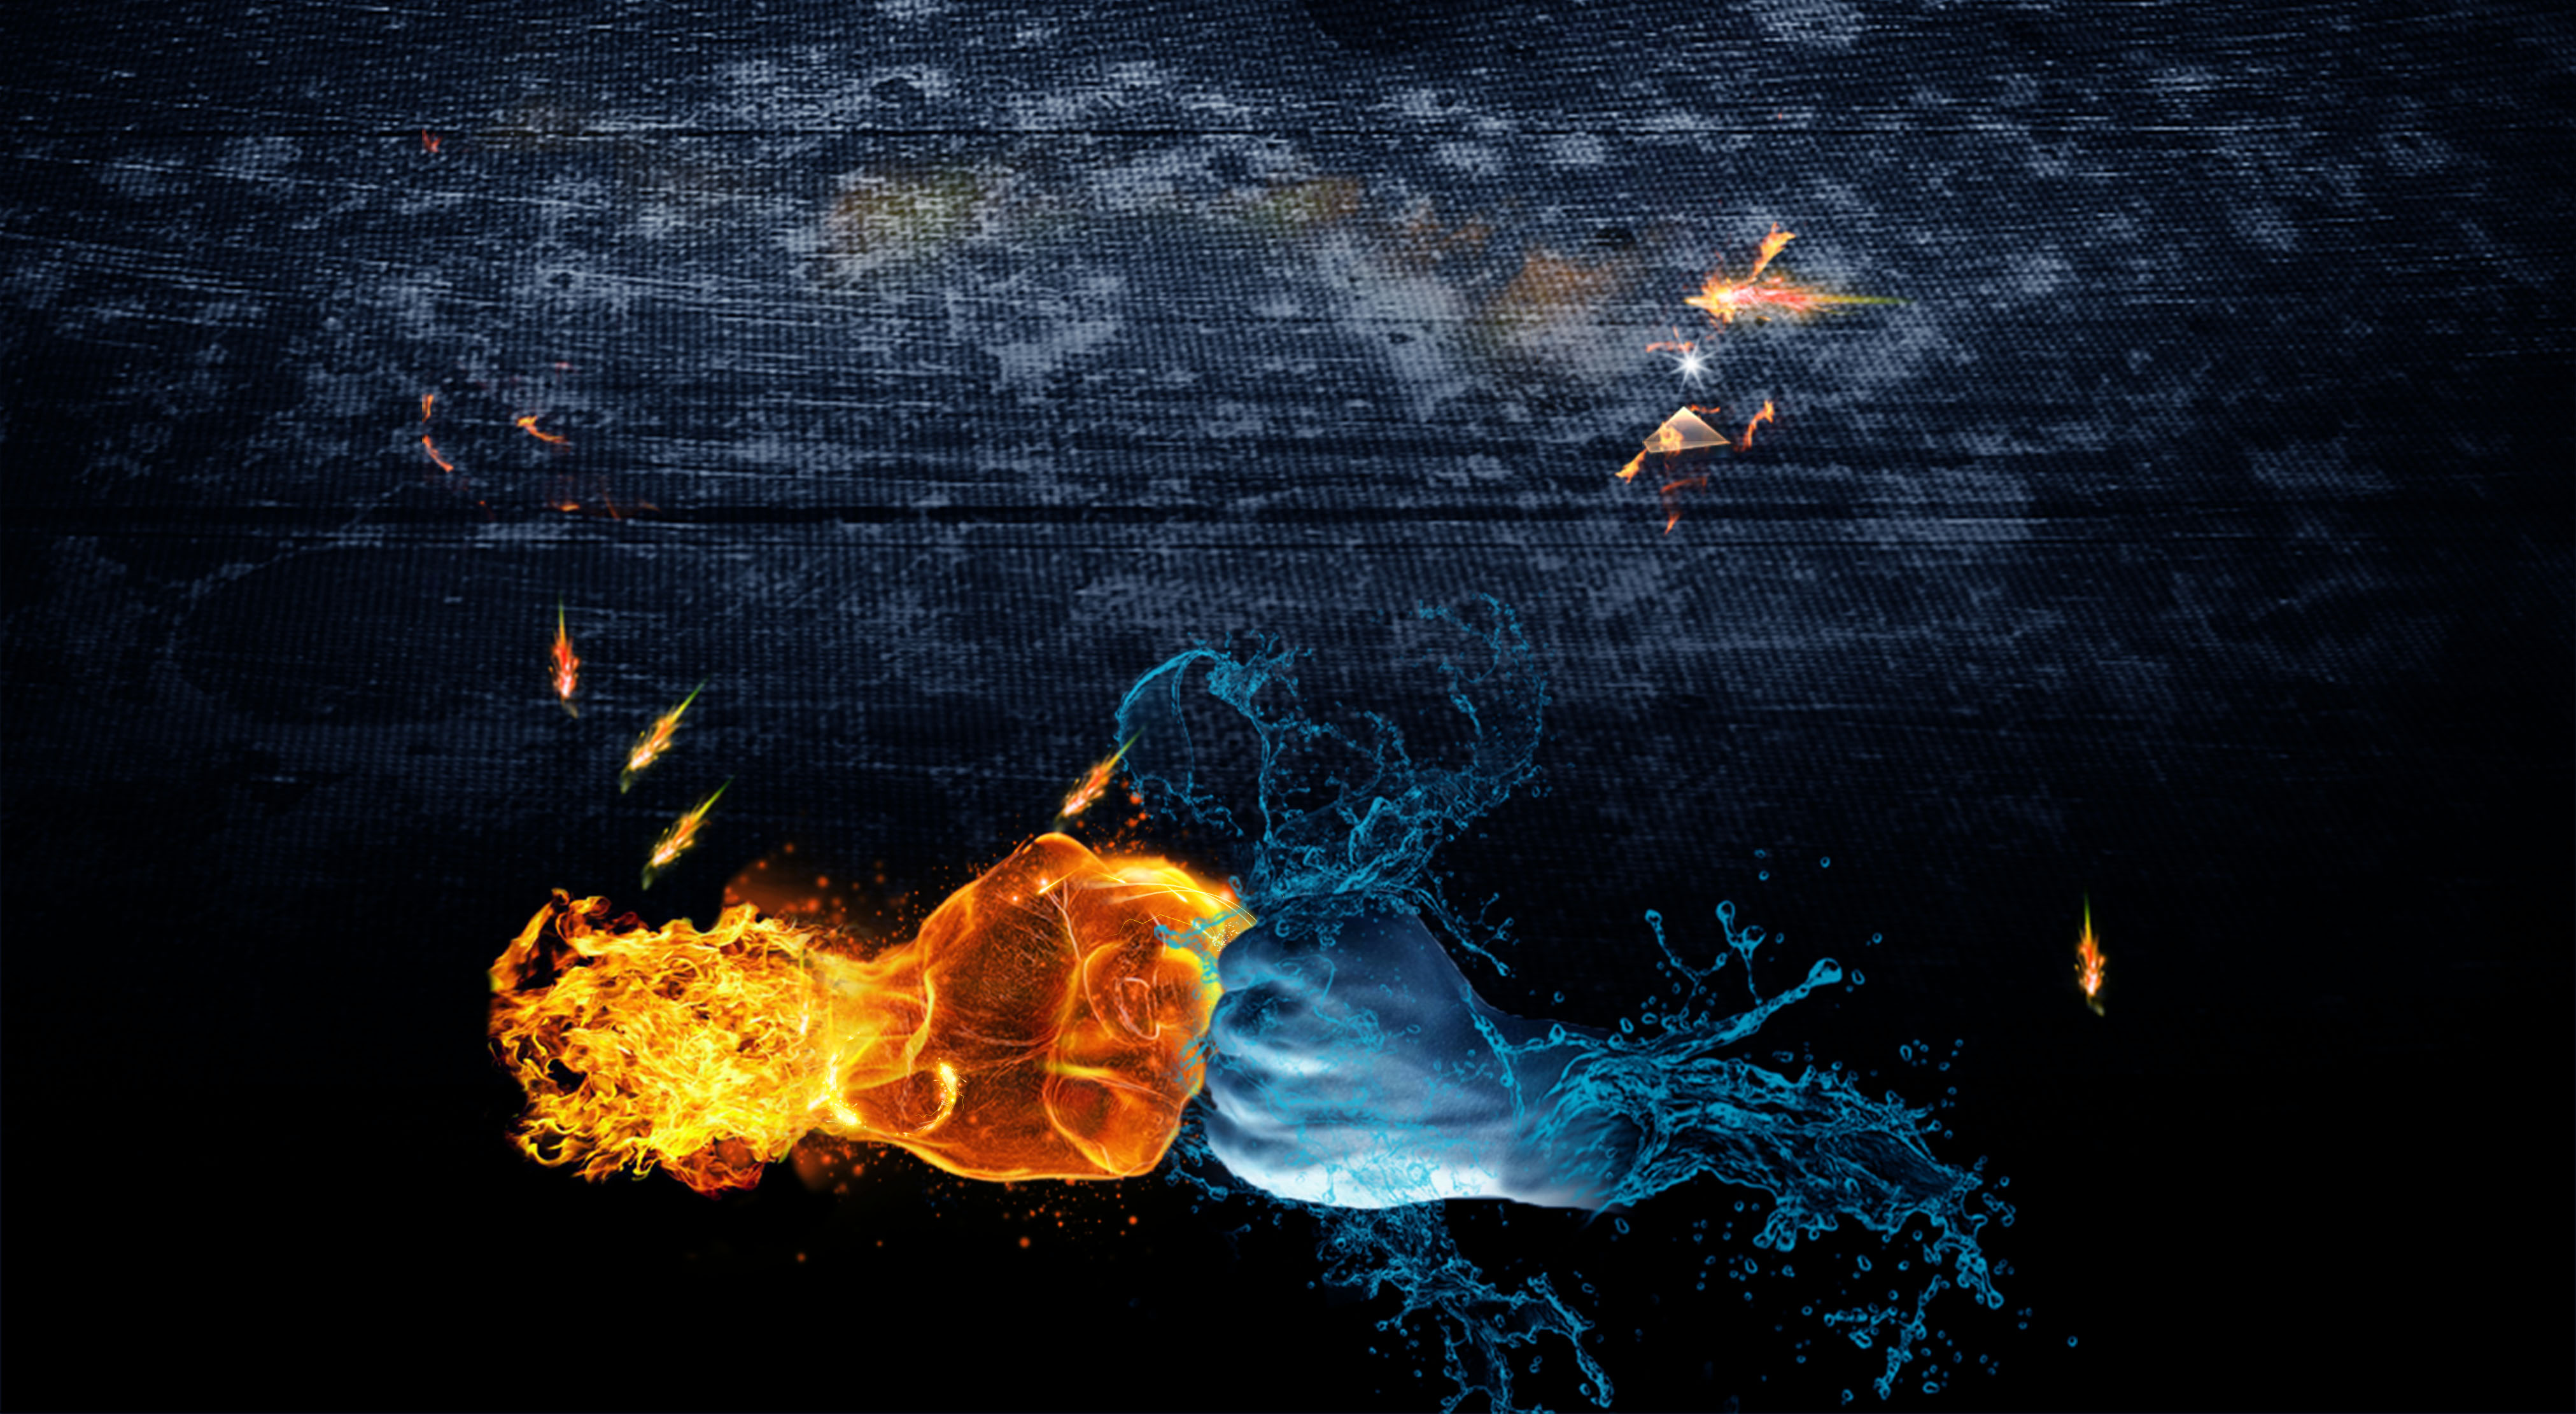 fist fire and water background  fashion  fist  flame